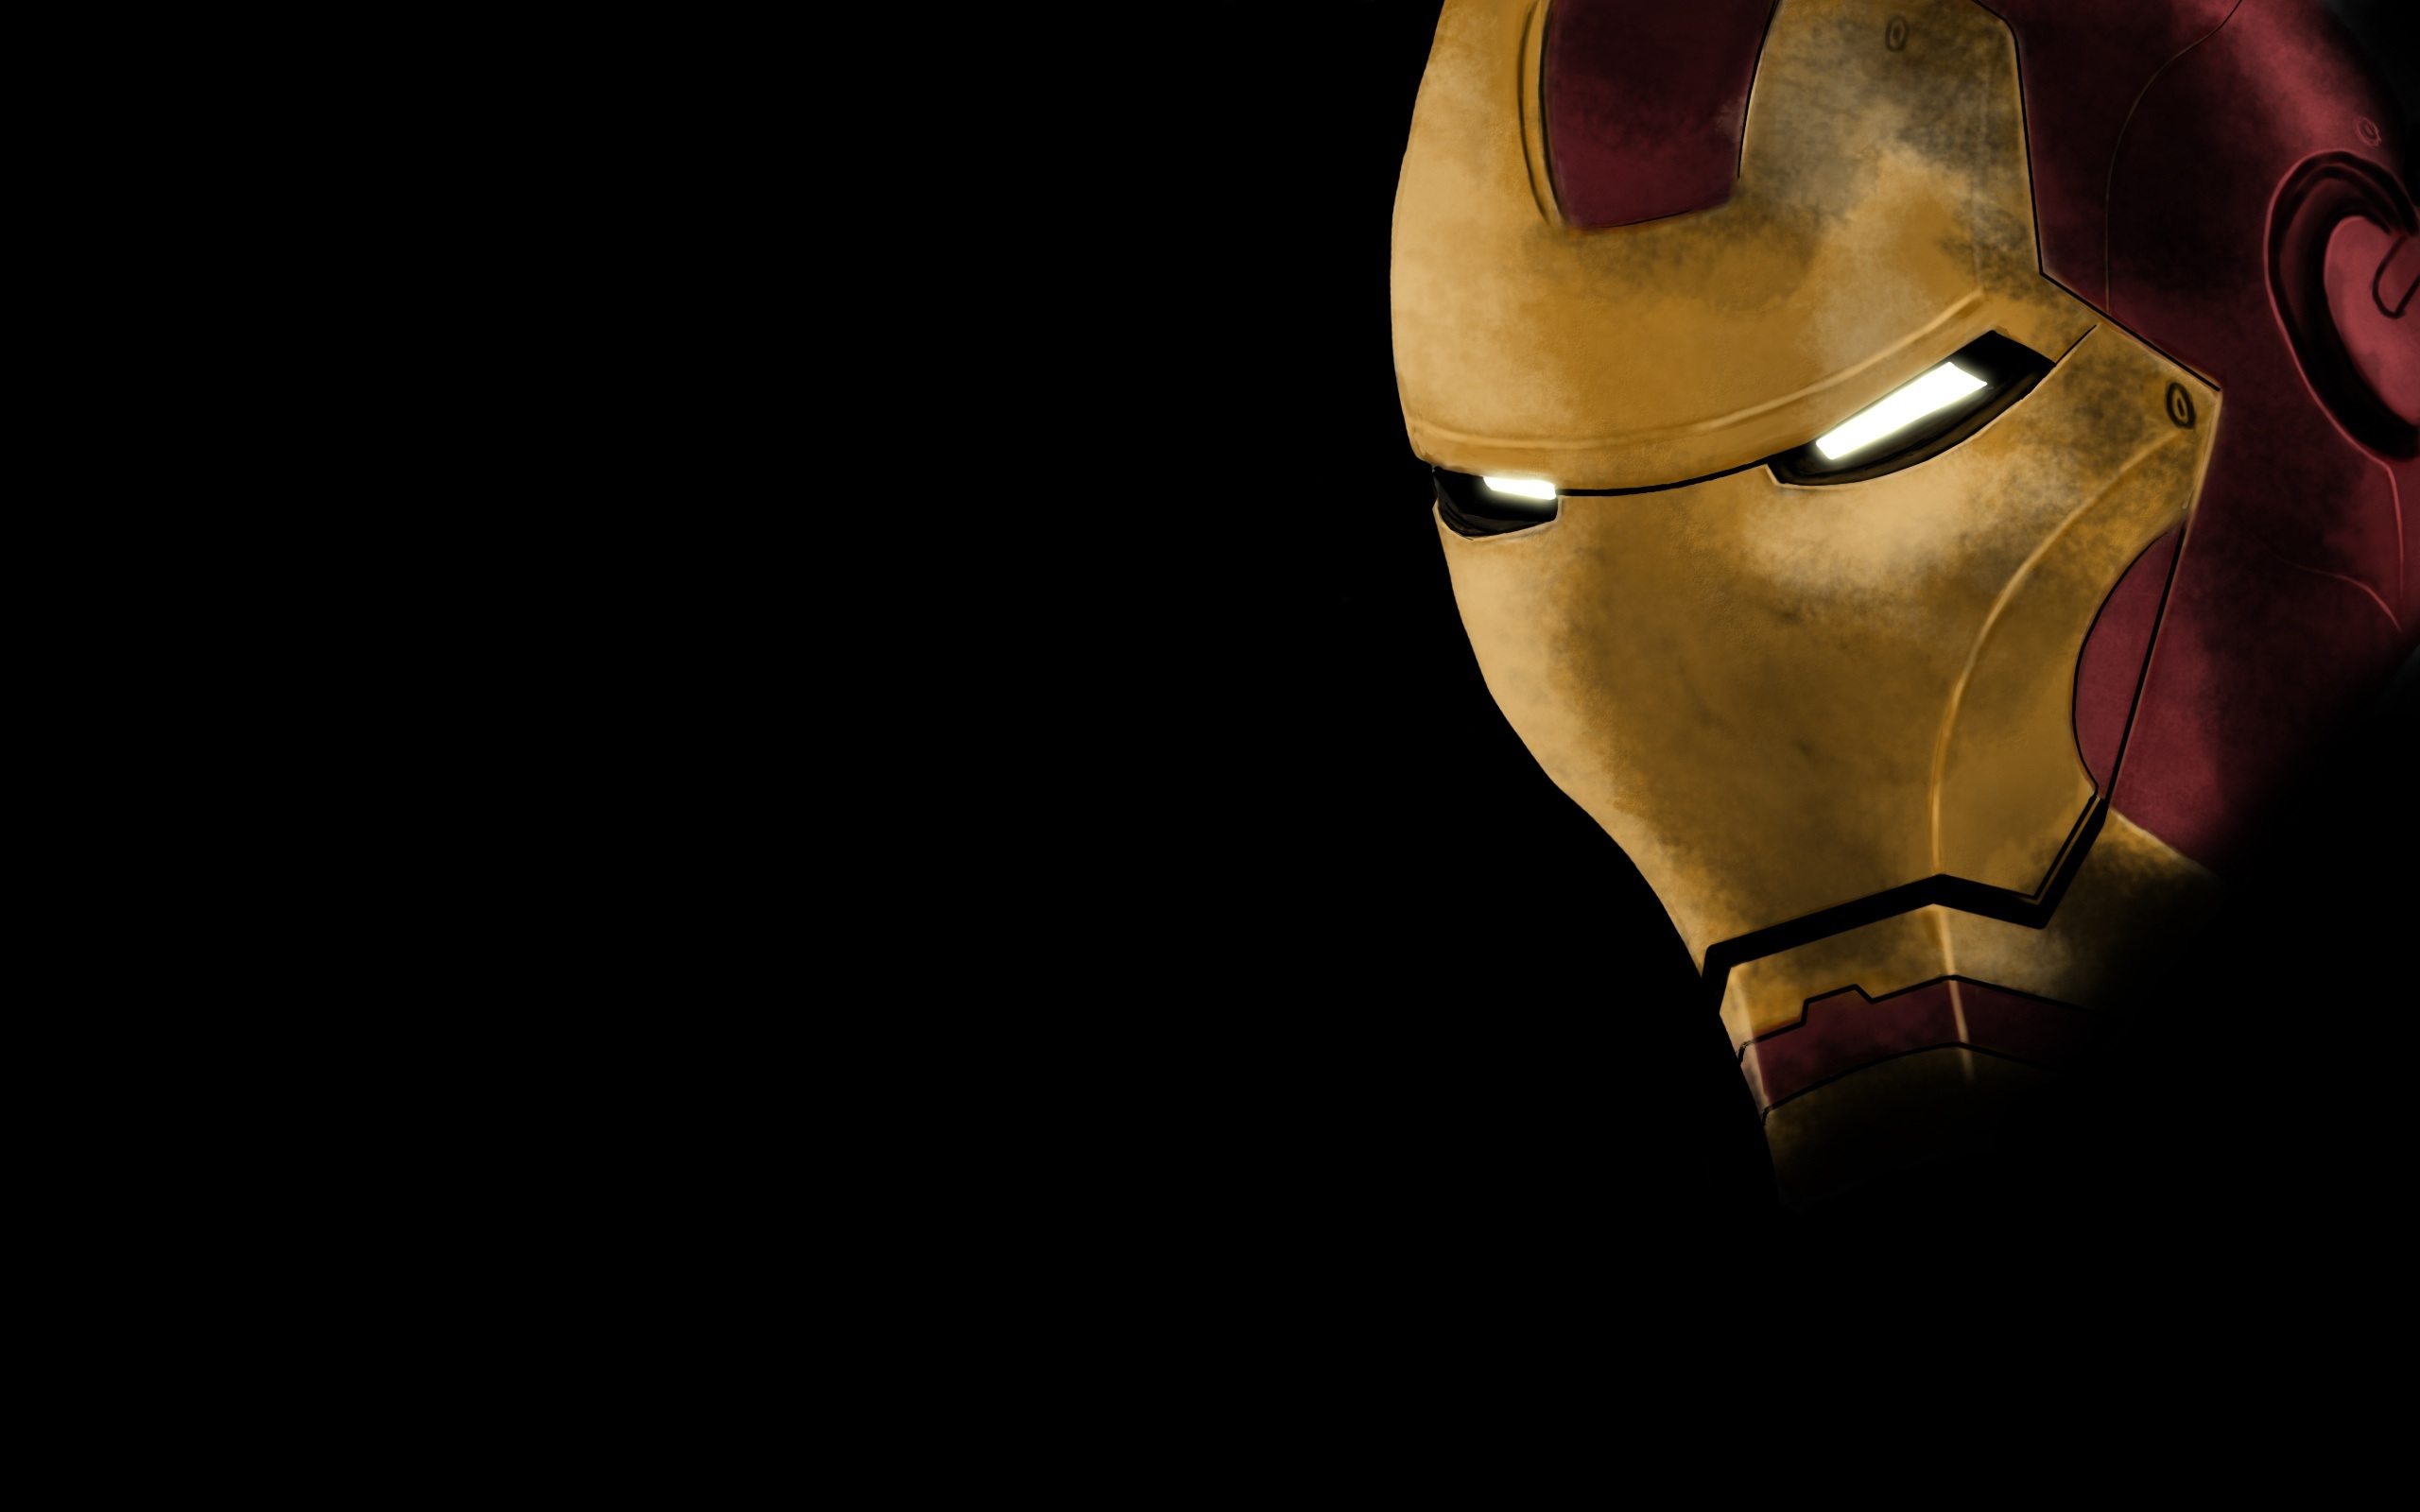 Iron Man Wallpaper 833912 Iron Man Wallpaper 833932 Iron Man 2560x1600